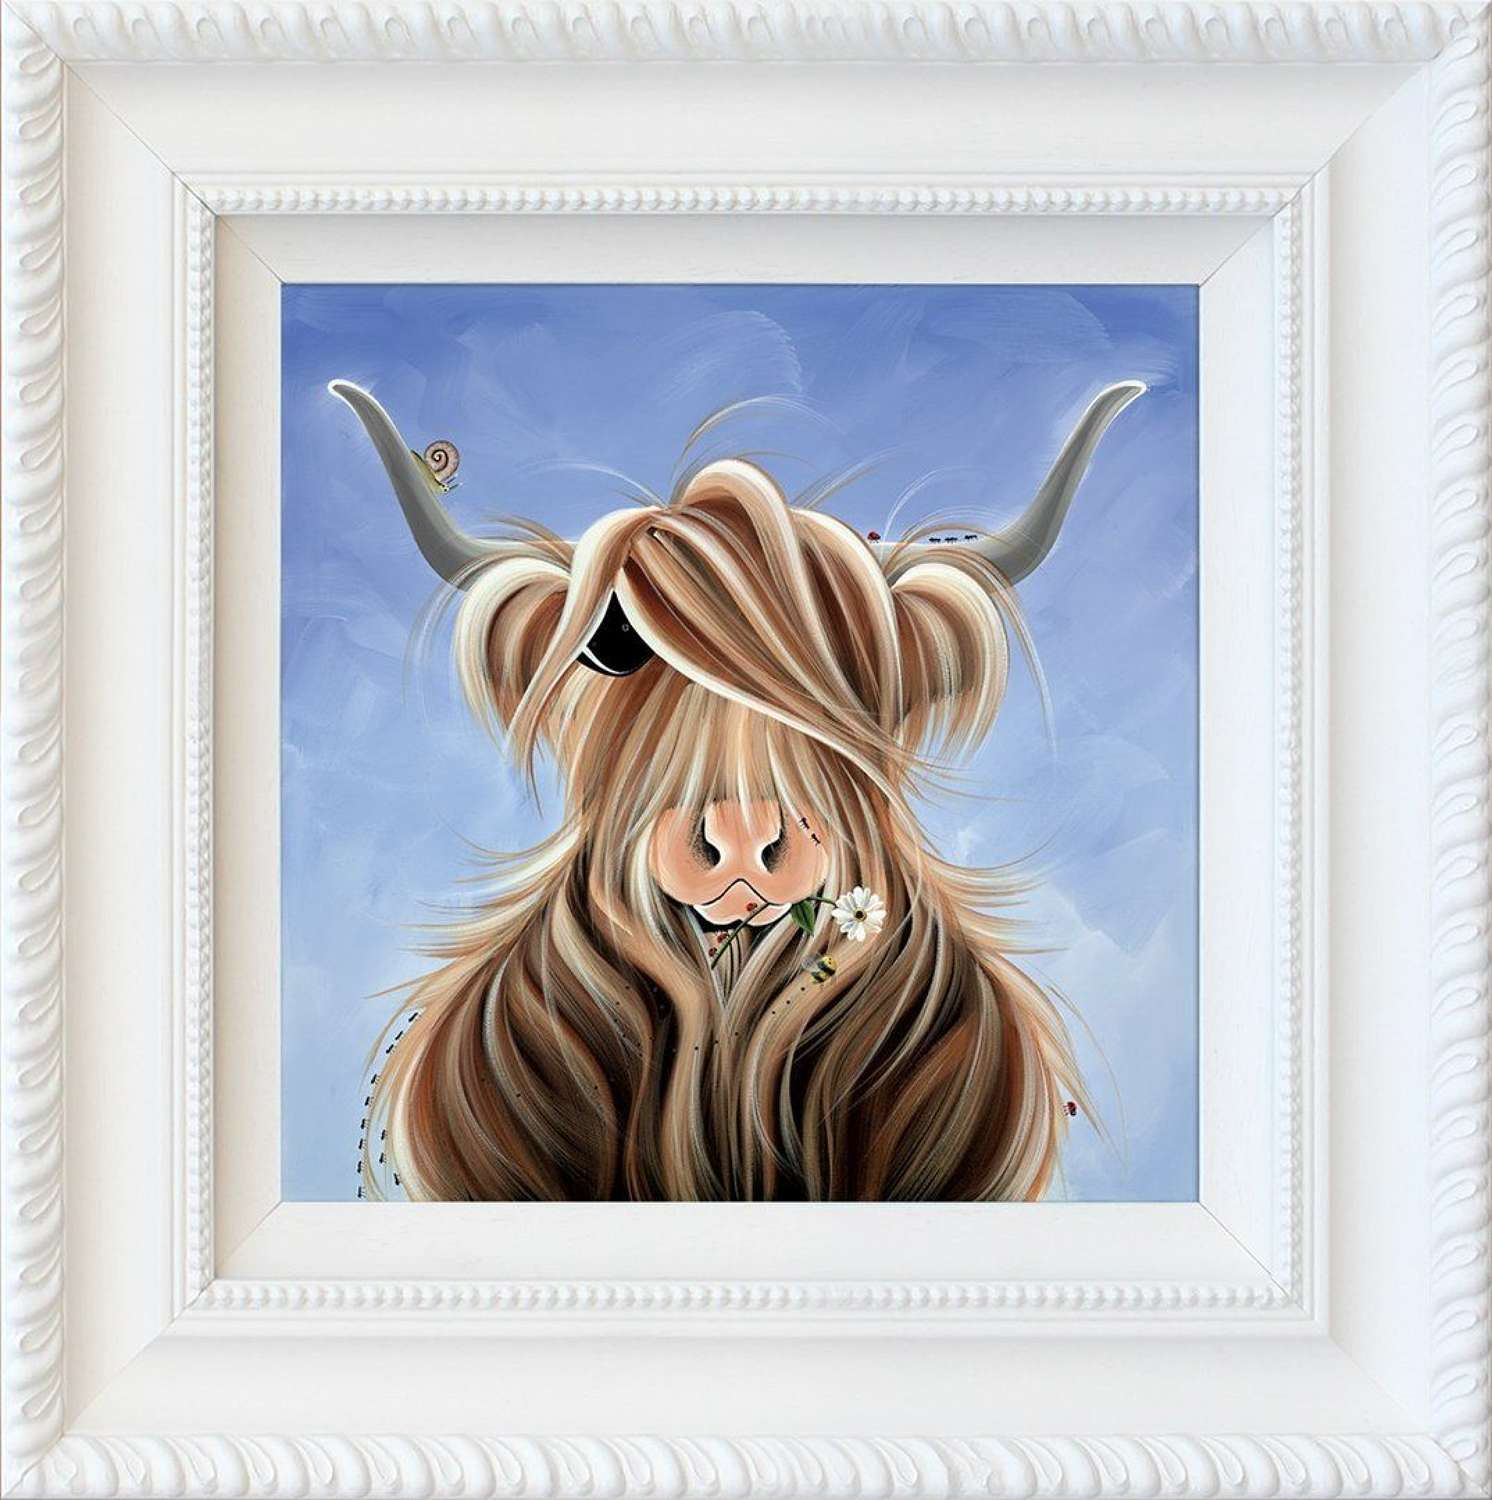 Finlay McMoo - Framed Art Print by Jennifer Hogwood